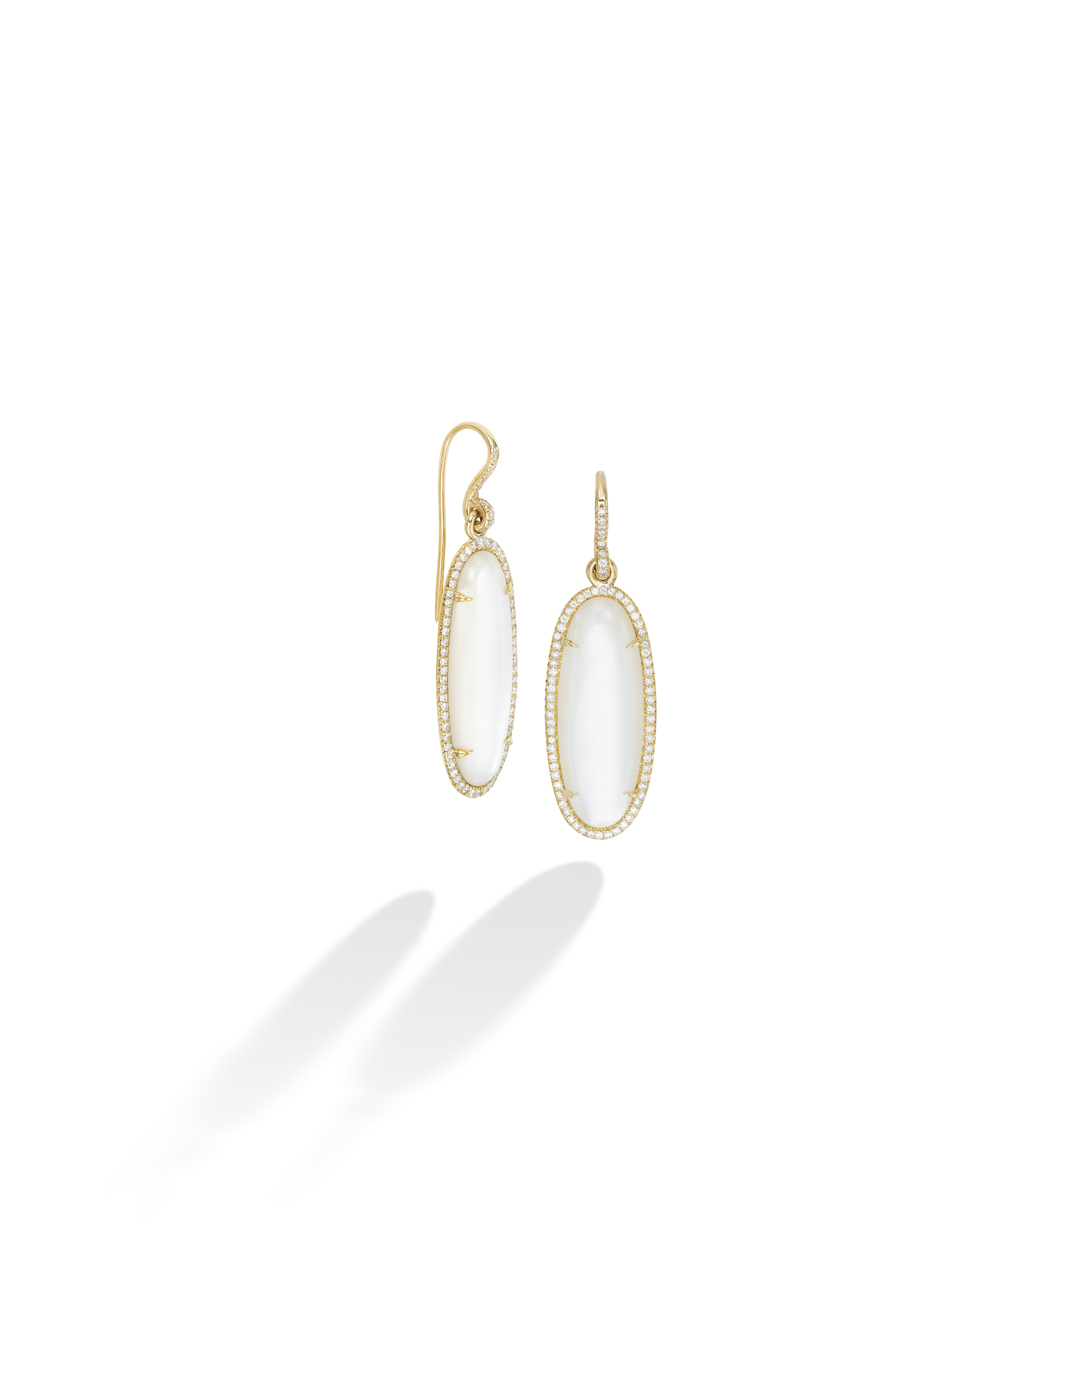 mish_products_earrings_Arden-Oval-MOP-1